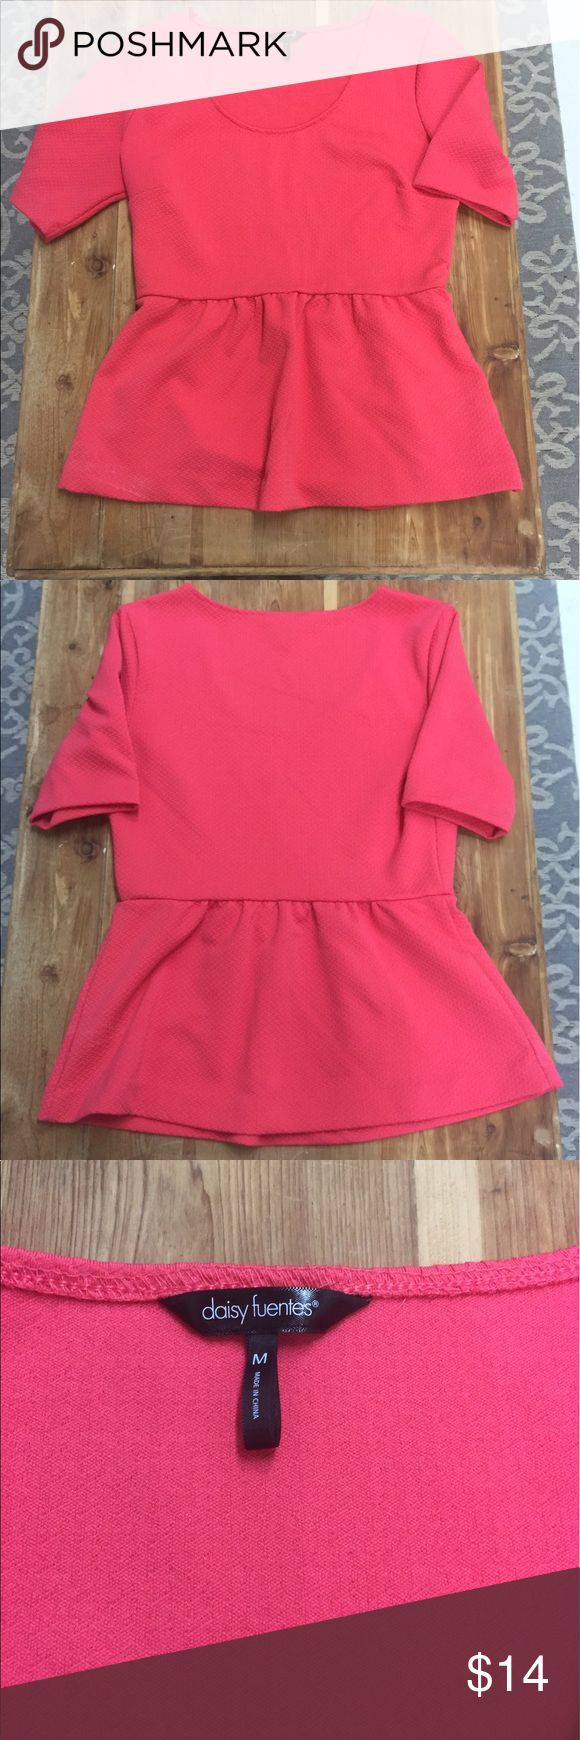 Pink peplum top Perfect pink peplum top!! Great for the office or paired with jeans or pants for a night out! Daisy Fuentes Tops